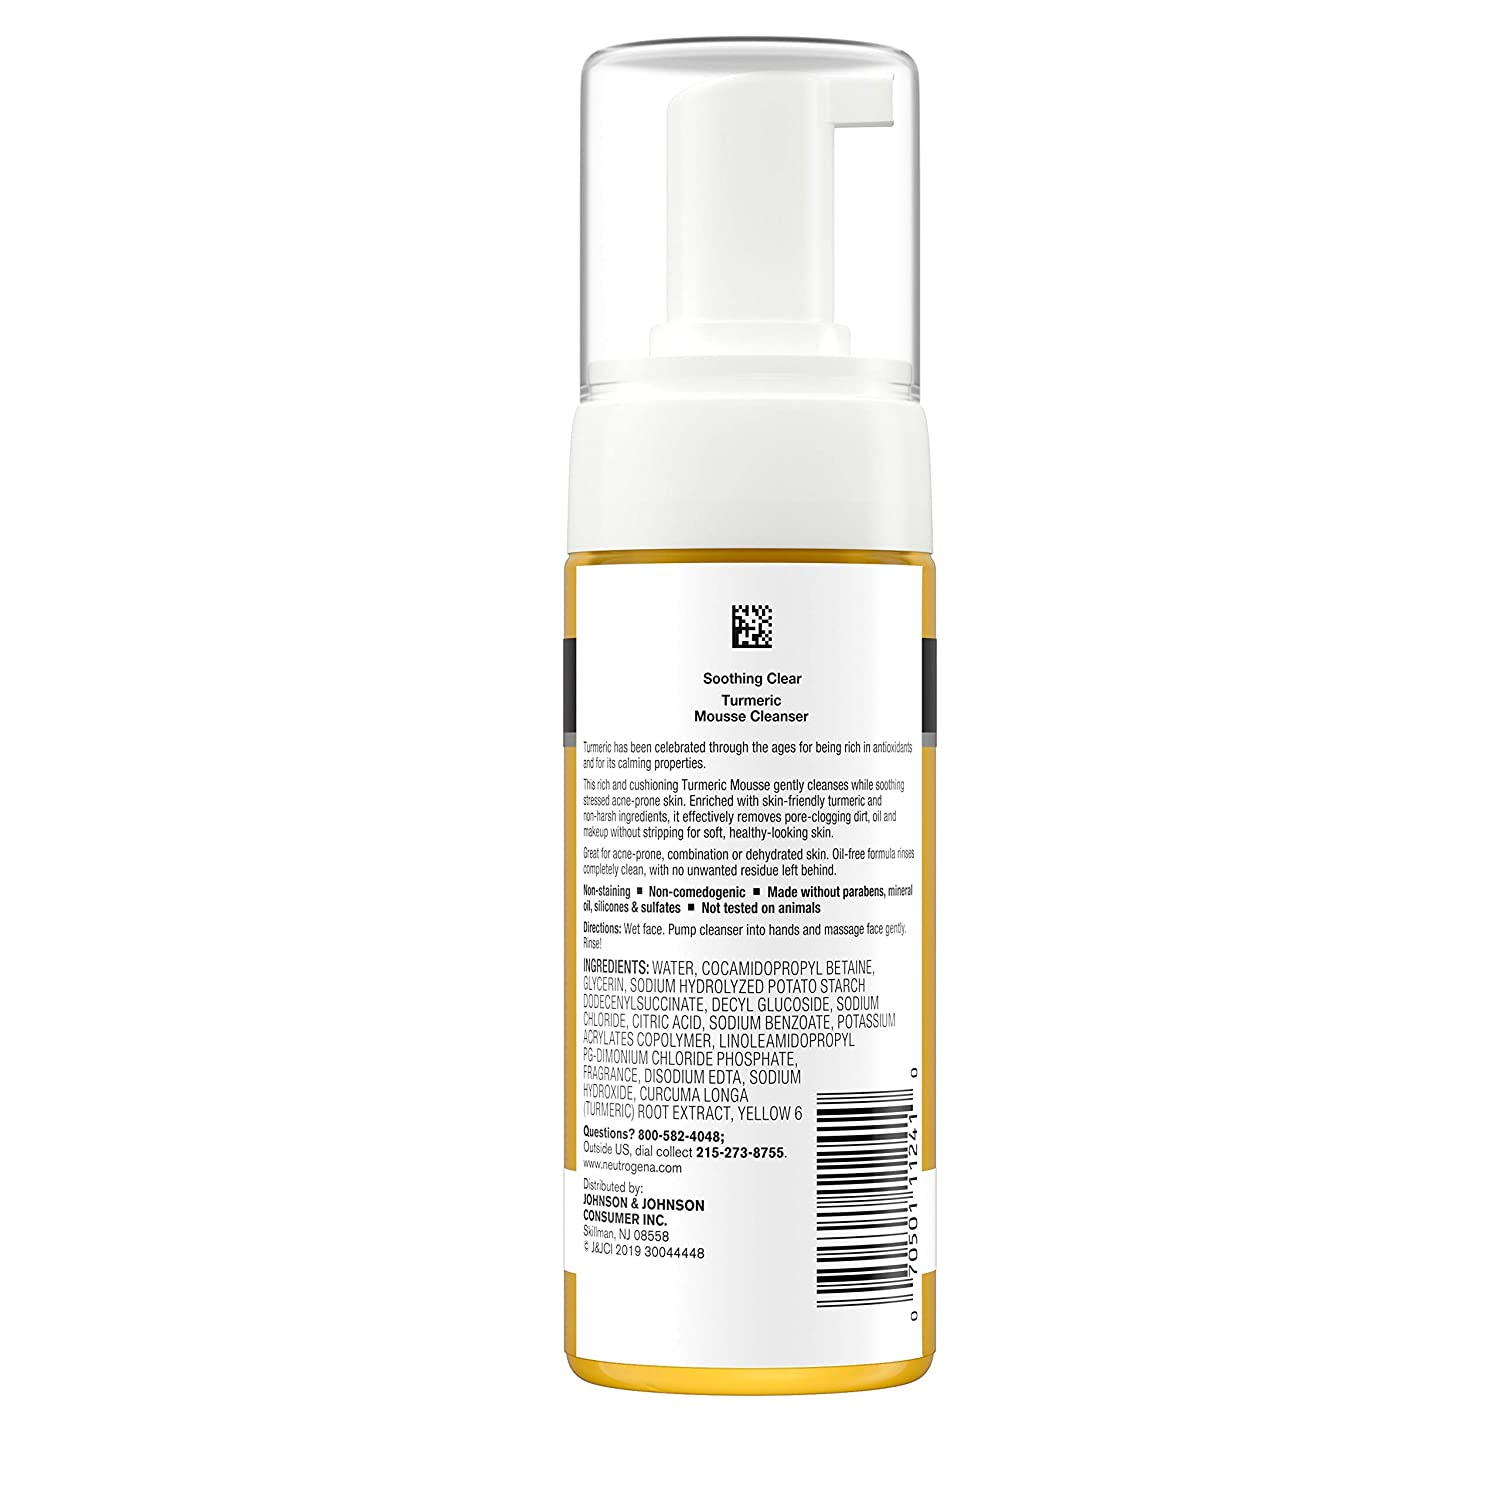 Neutrogena Soothing Clear Calming Mousse Facial Cleanser with Soothing & Calming Turmeric, Gentle Face Wash for Acne-Prone Skin, Paraben-Free, Oil-Free, Not Tested on Animals, 5 fl. oz: Beauty